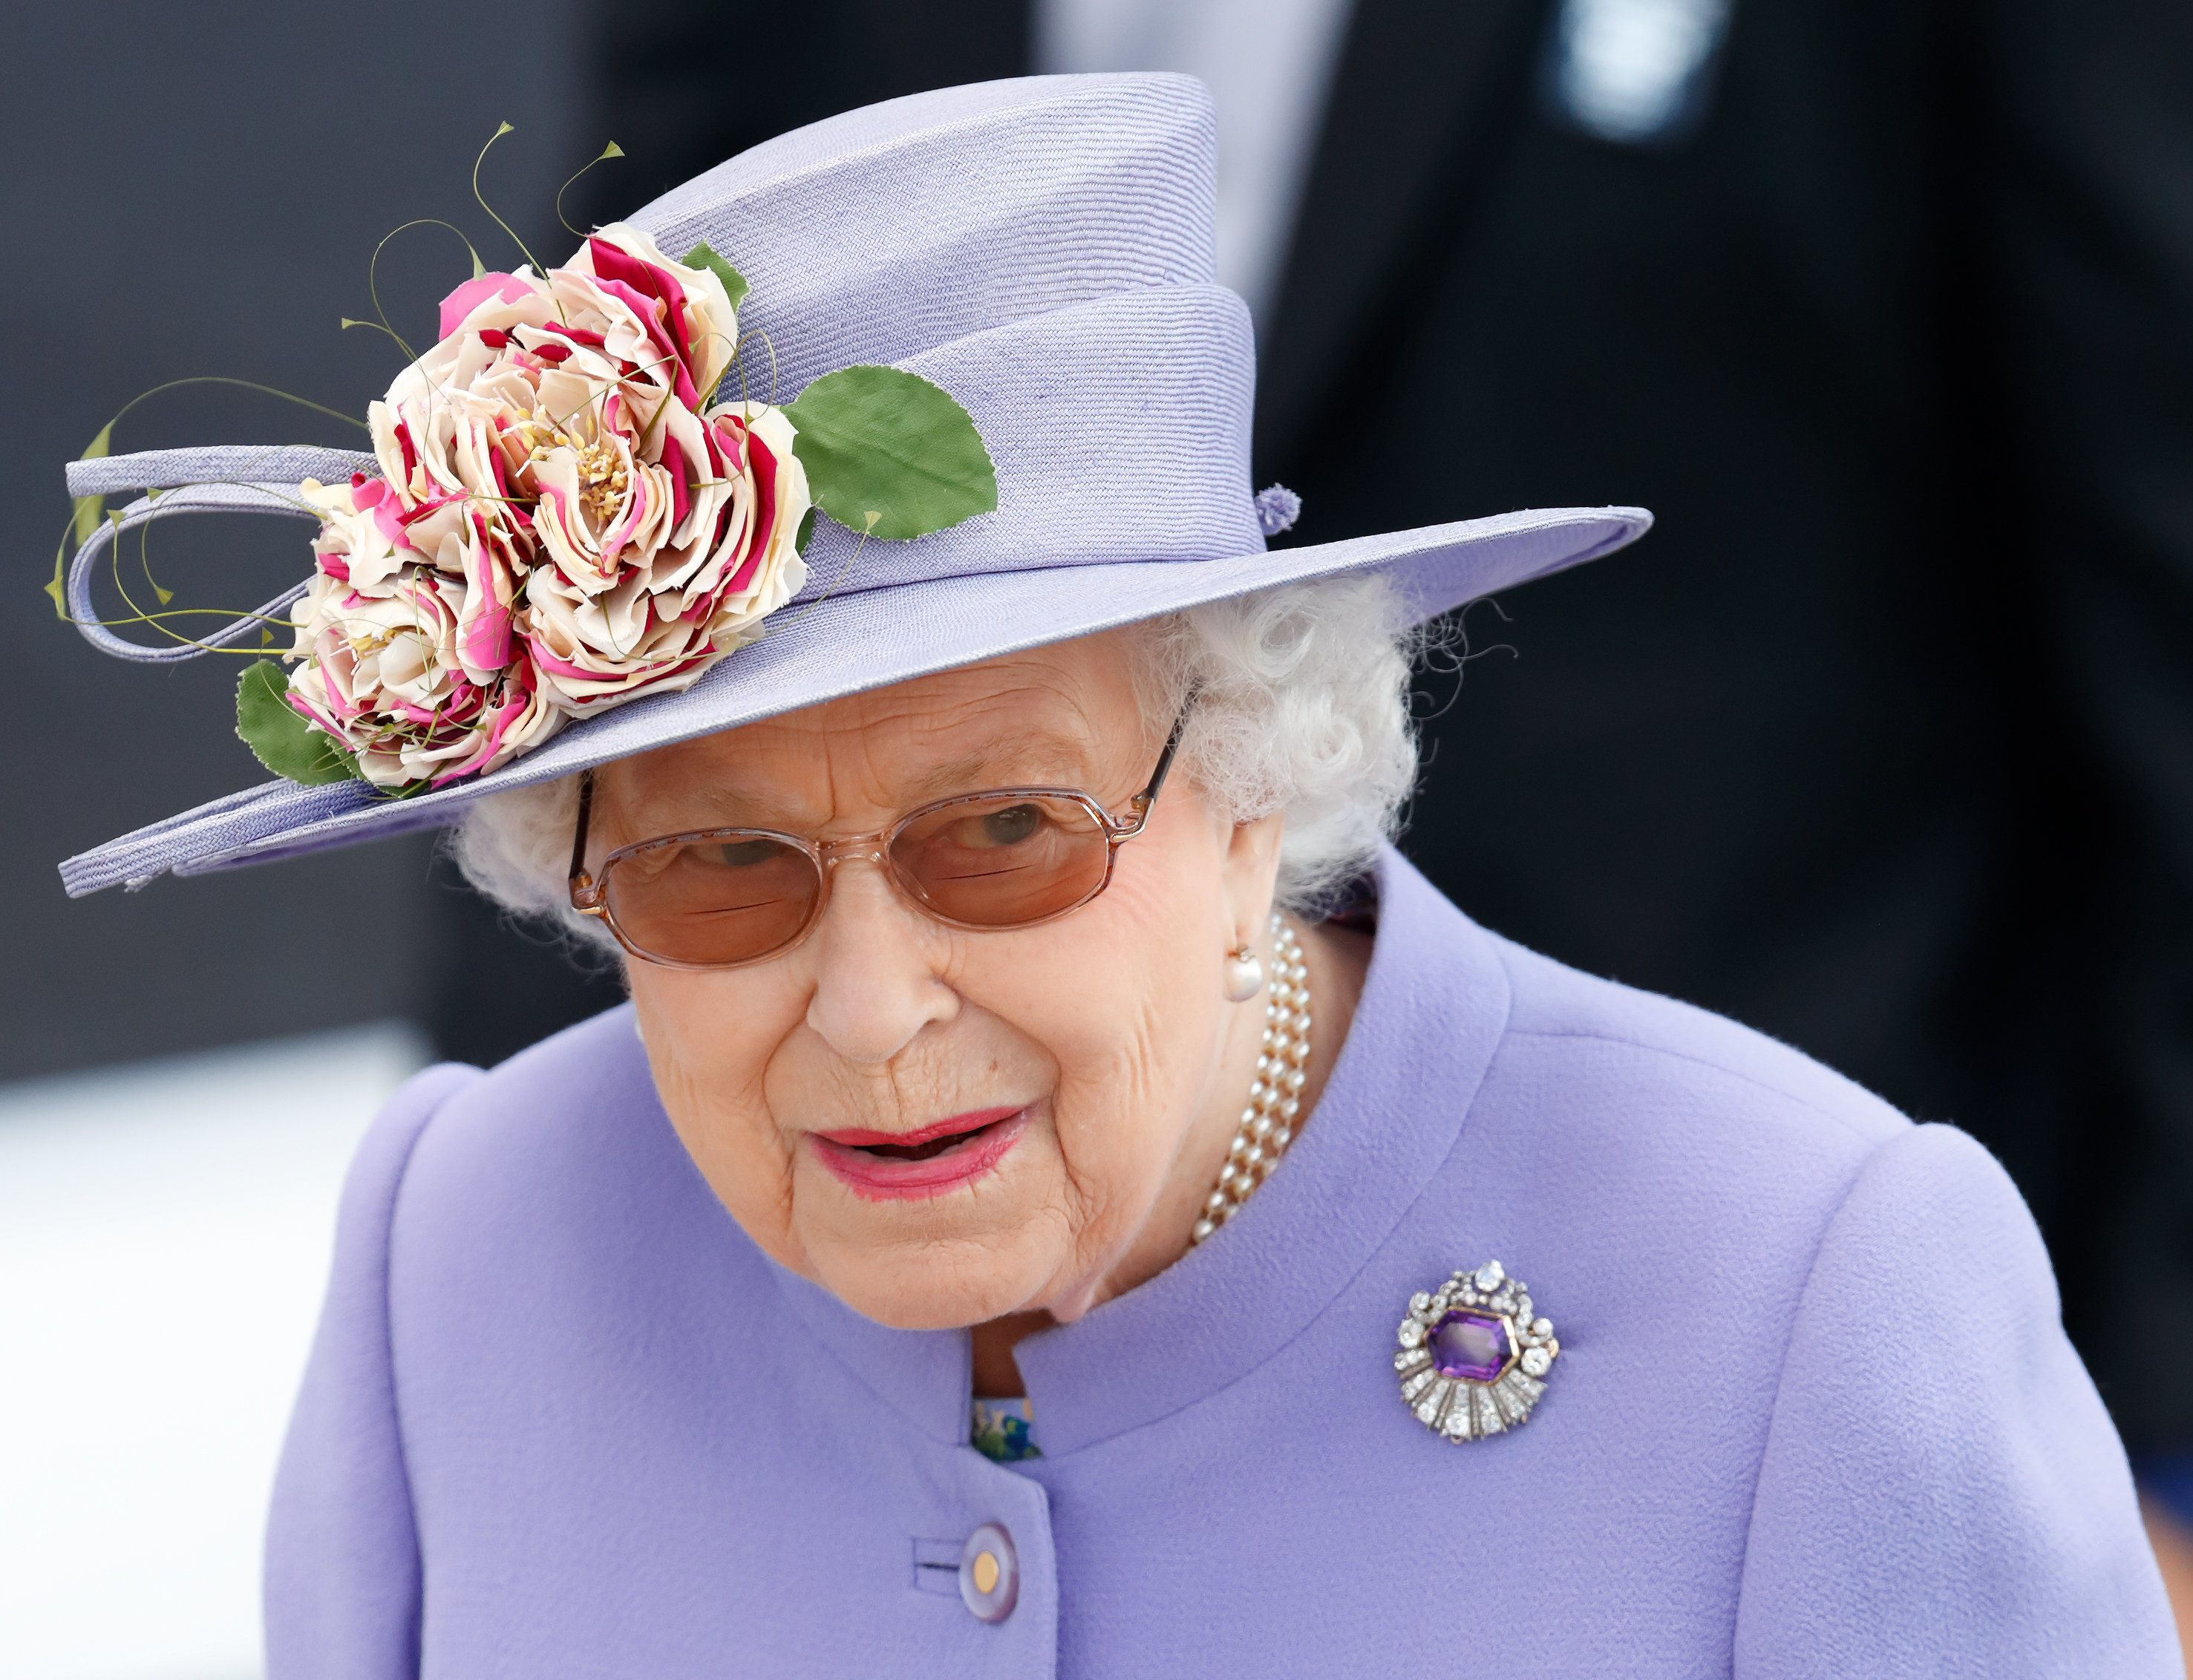 The Queen Has Undergone Surgery To Remove Cataract From